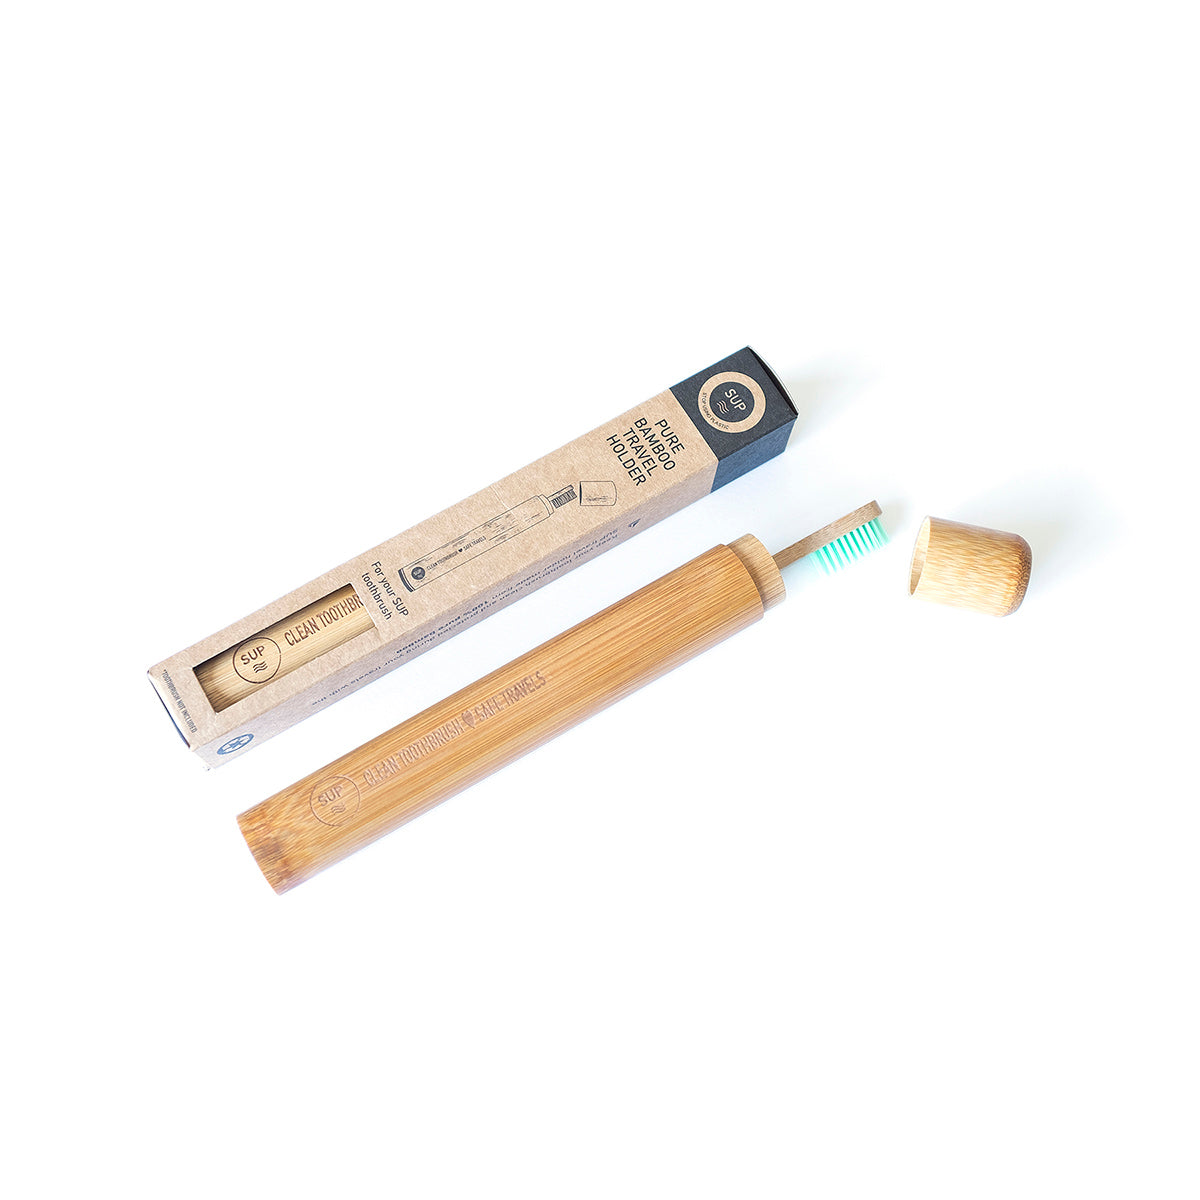 Bamboo brush travel holder